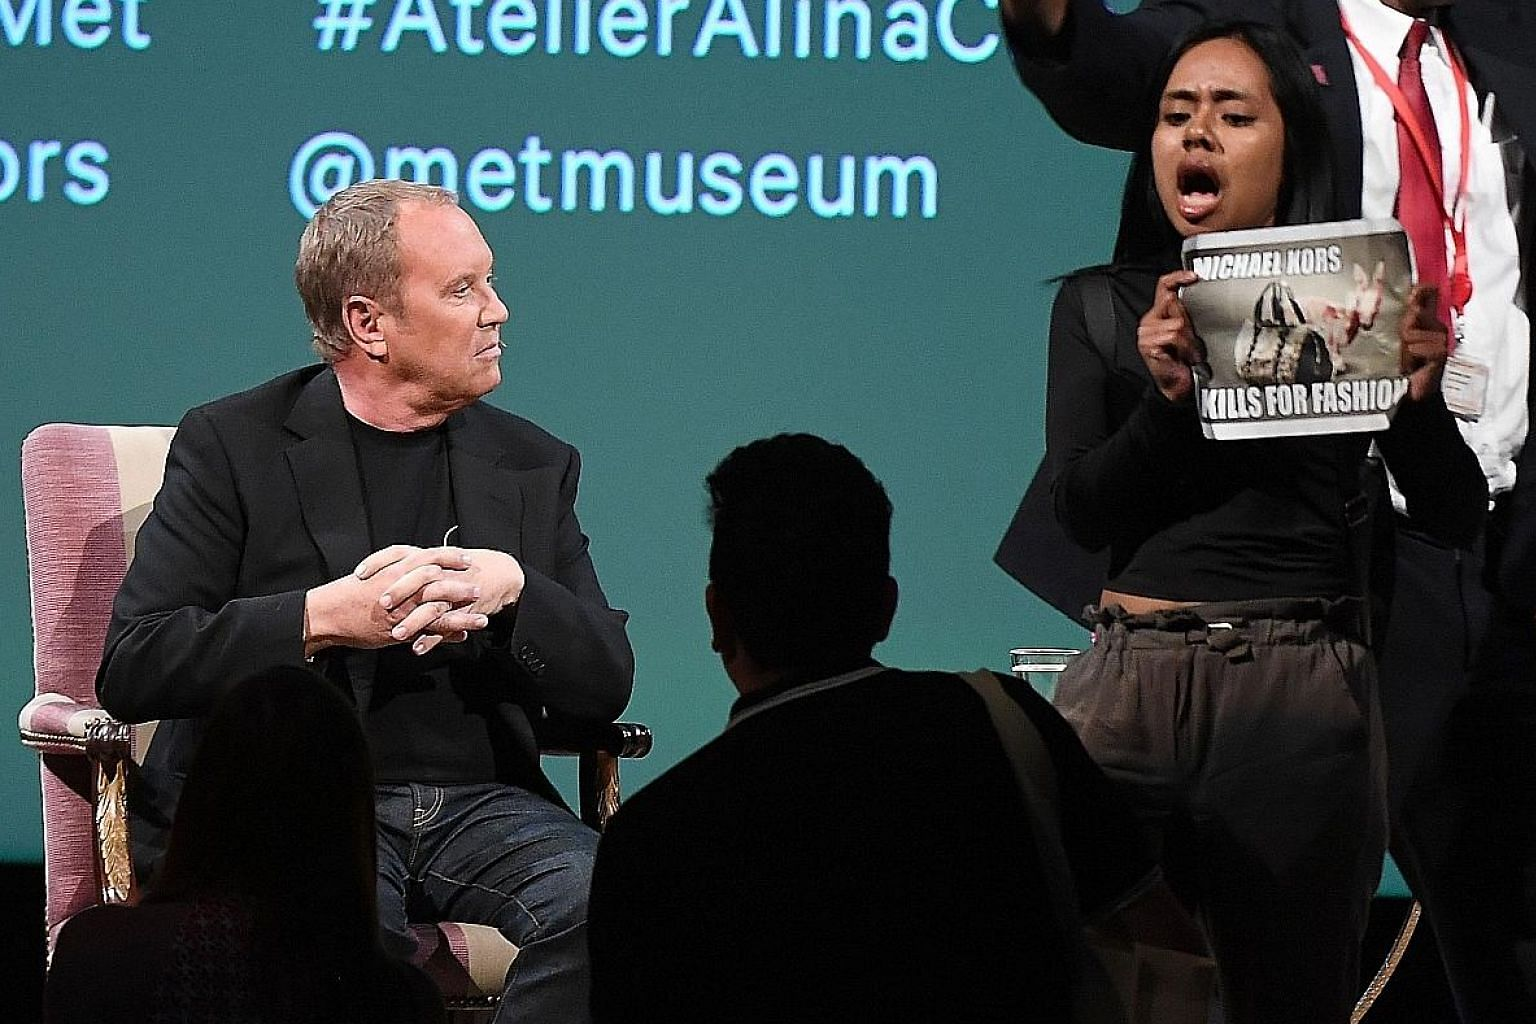 Fashion designer Michael Kors (above left) at the interview, which was disrupted by a protest.